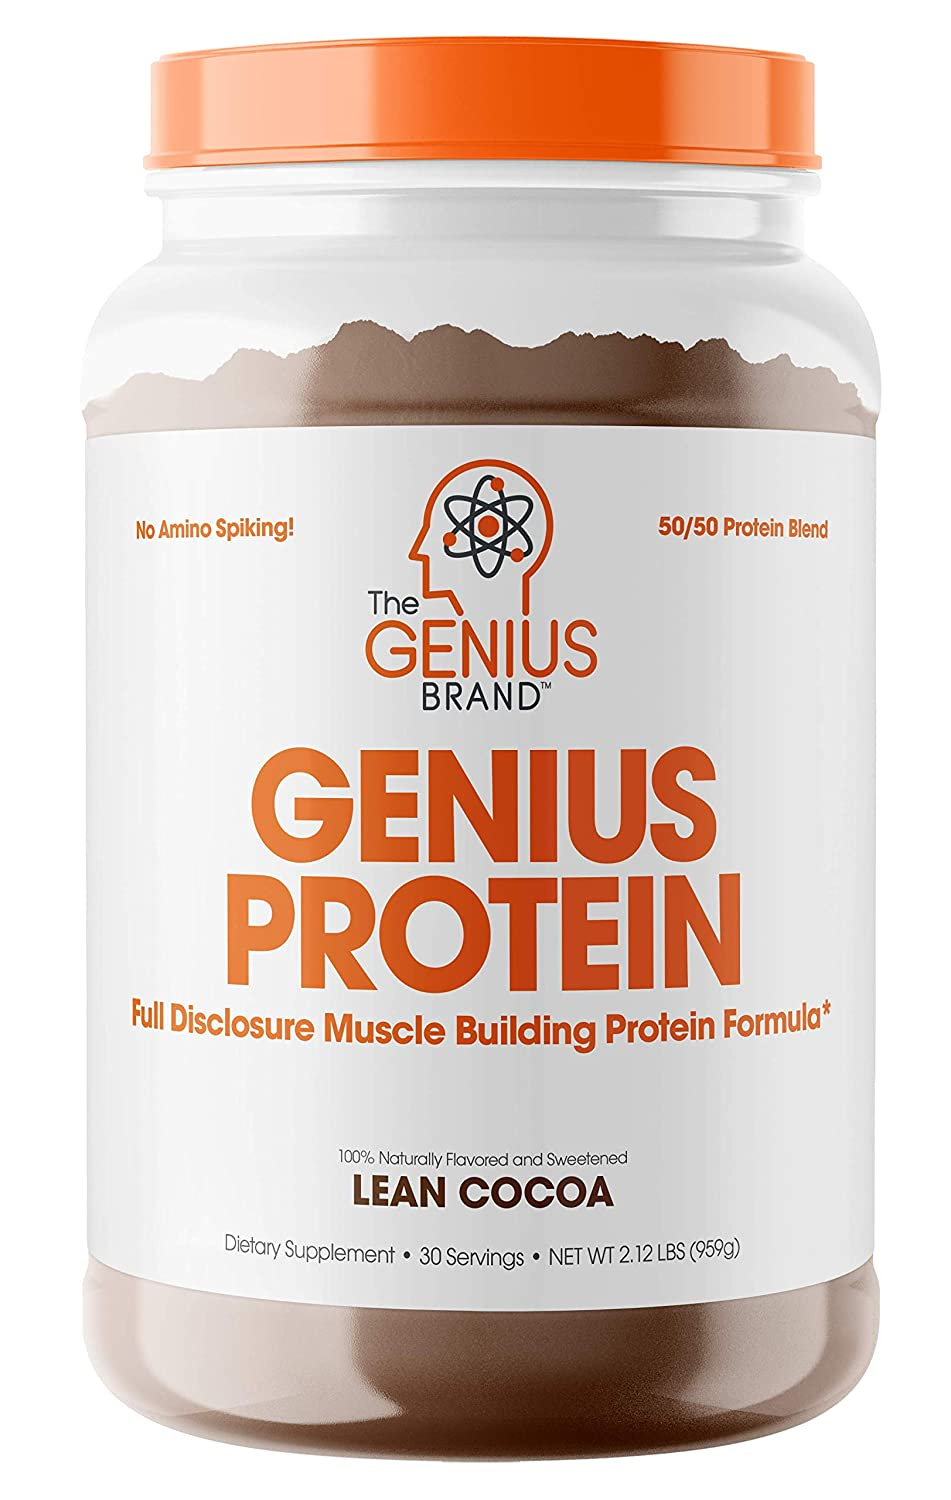 Genius Protein Powder Natural Whey Protein Isolate Micellar Casein Lean Muscle Building